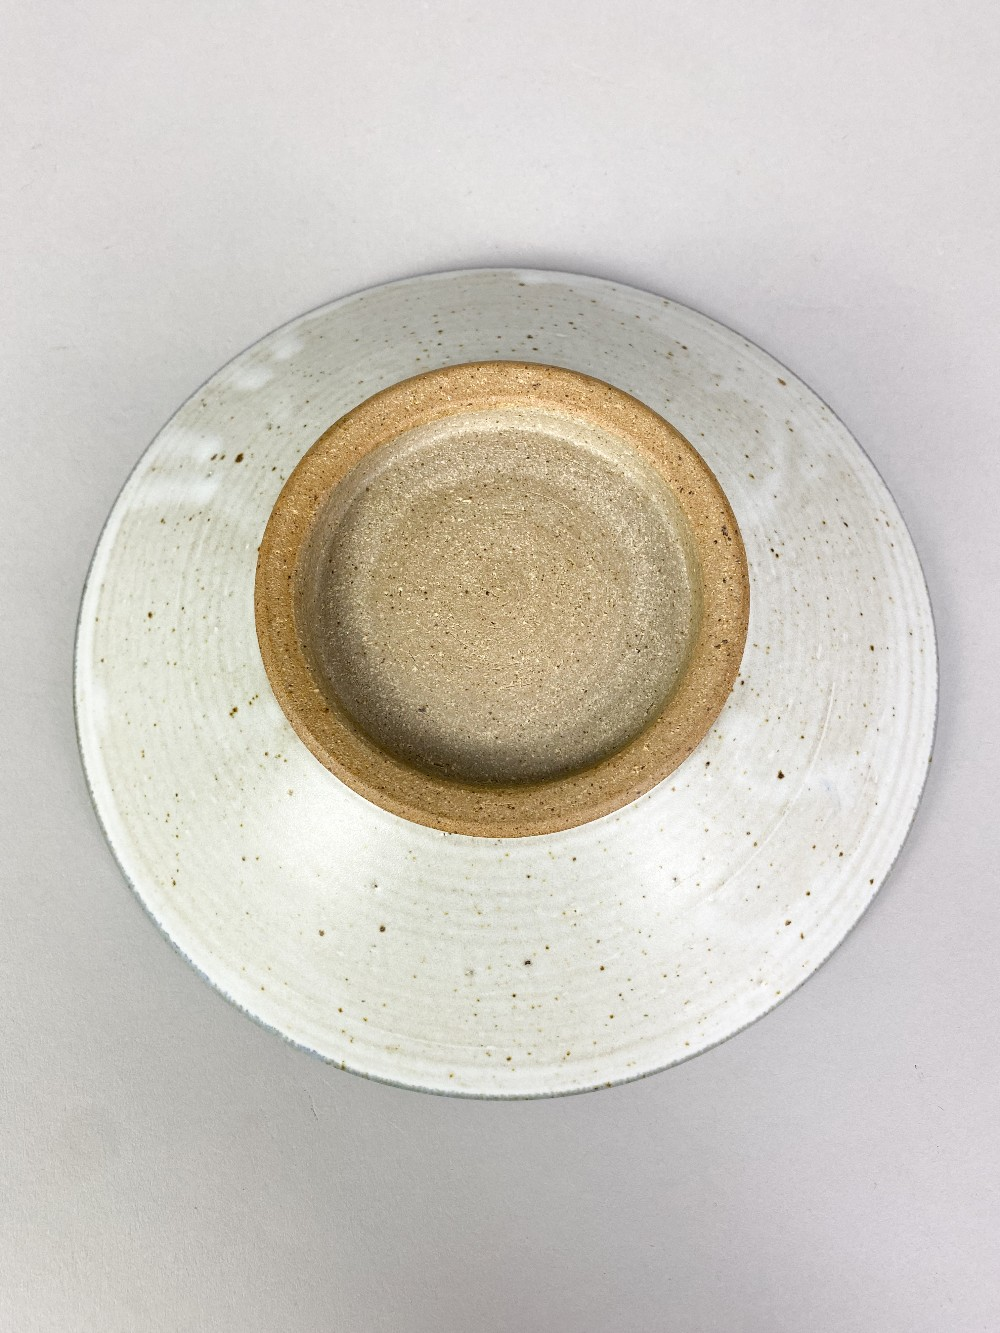 BRYAN NEWMAN (1935-2019) for Aller Pottery; a stoneware footed dish with wax resist decoration on - Image 4 of 5